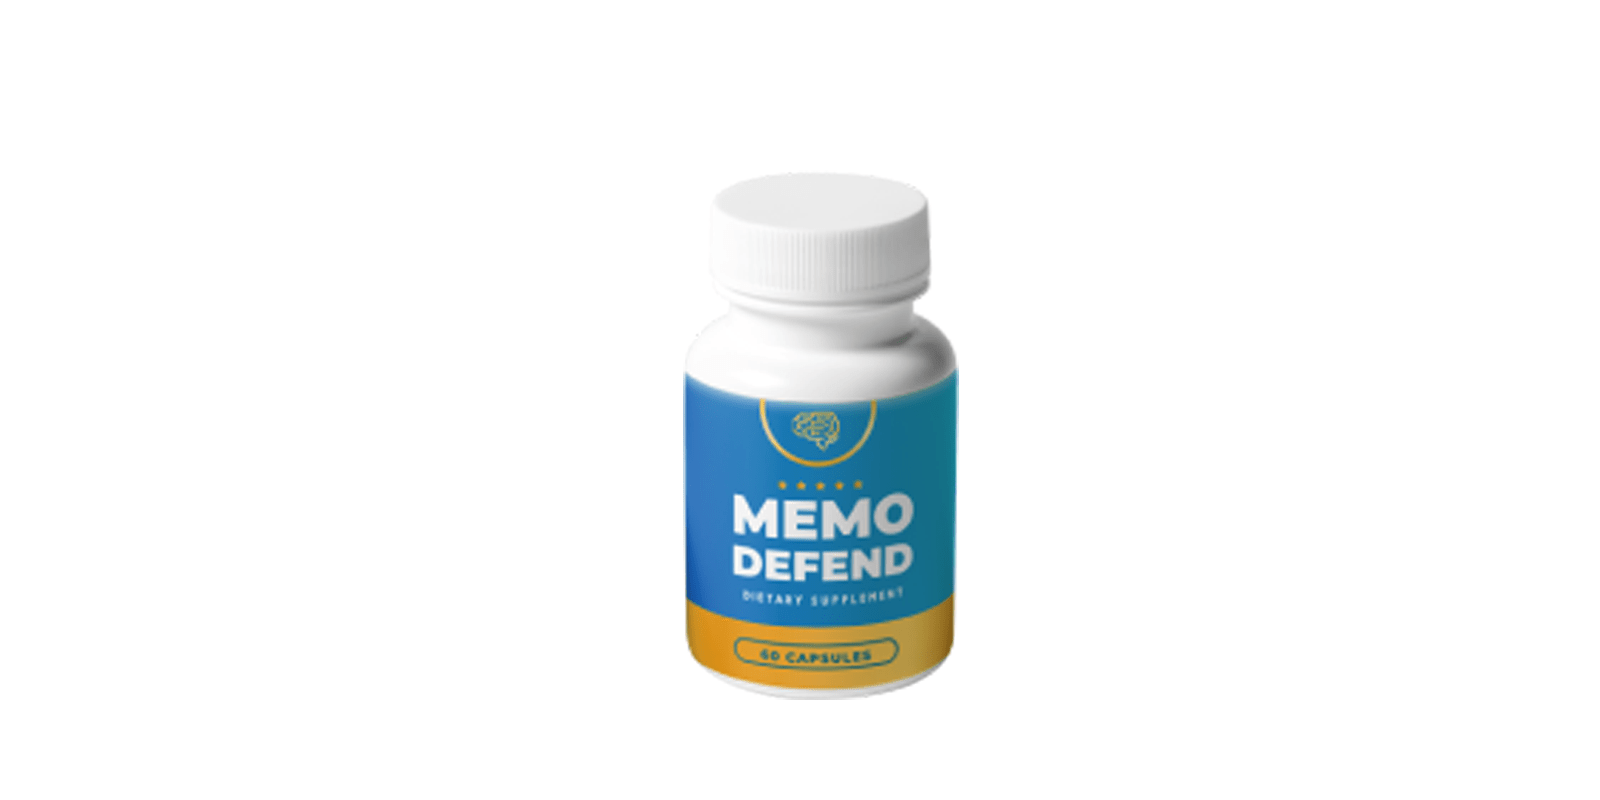 MemoDefend Reviews – A Reliable Treatment For Memory Loss?